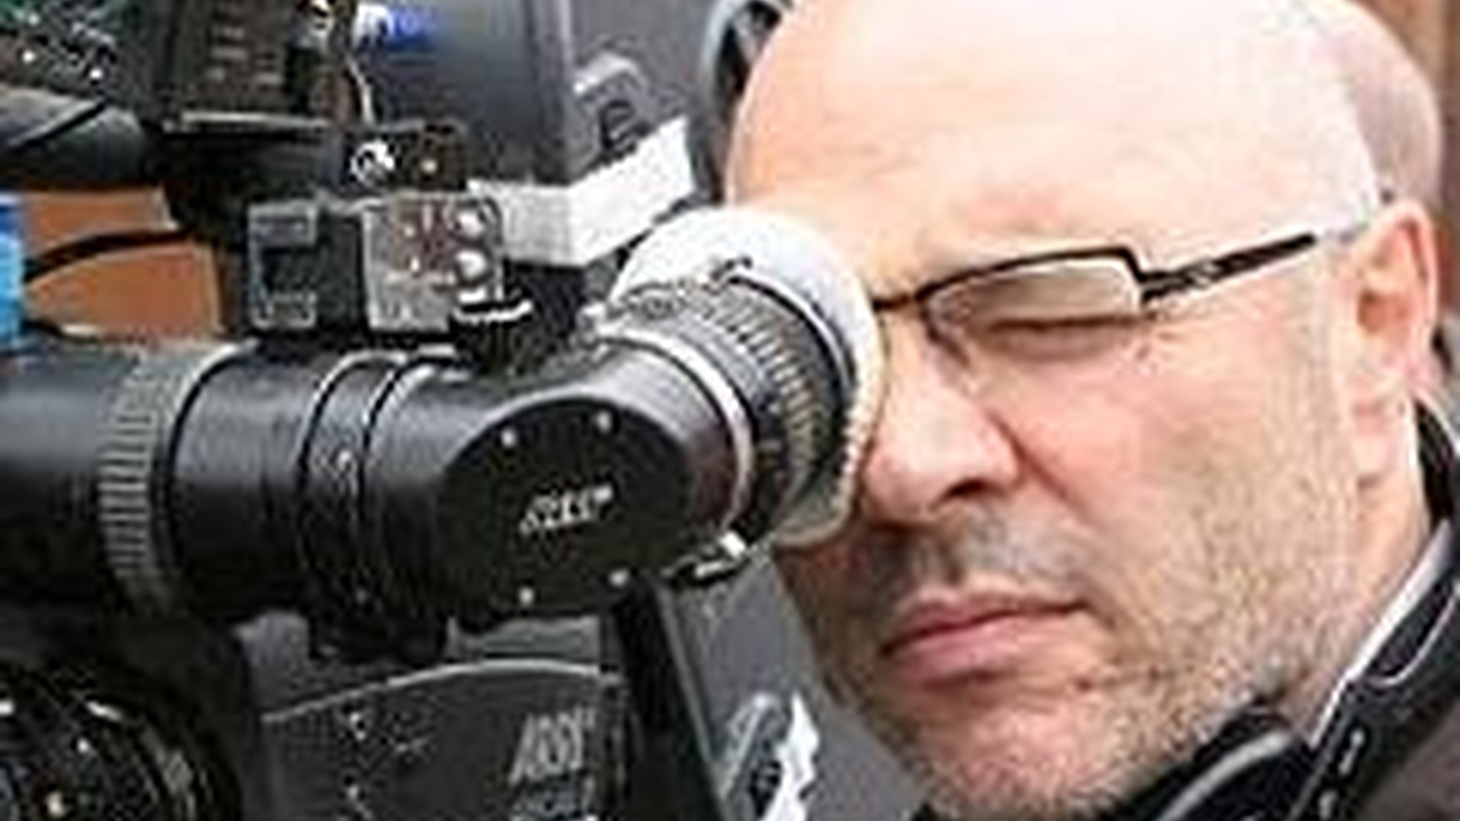 The late writer-director Anthony Minghella (Michael Clayton, Cold Mountain, The English Patient, Truly, Madly, Deeply) focused on characters trying to come to terms with themselves and found drama in the misperceptions in films both epic and intimate. We use this sad occasion to revisit his thoughtful interview on his last film, Breaking and Entering. (This show originally aired February 7, 2007.)